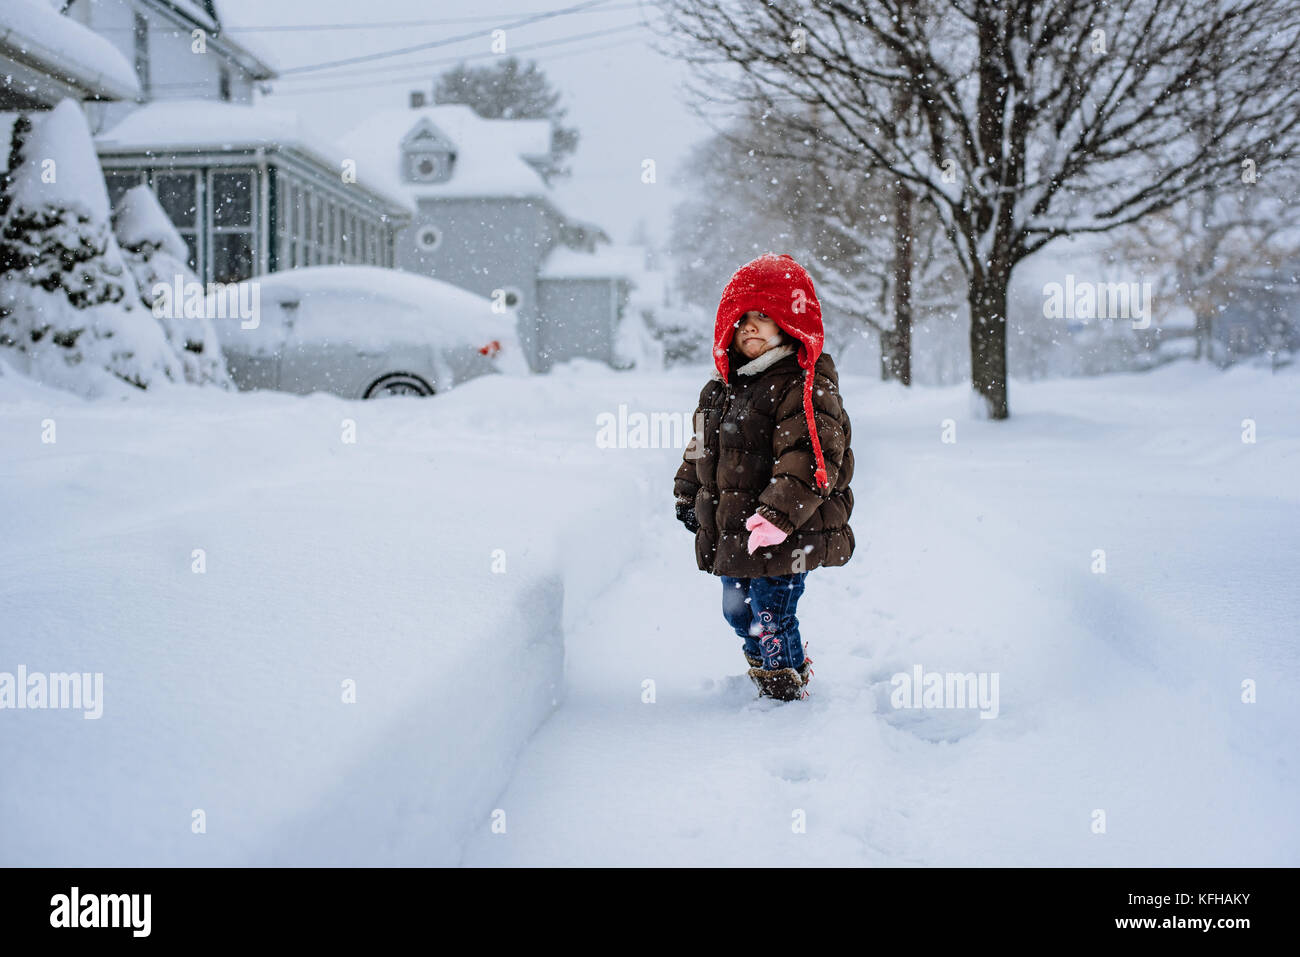 2-3 year old standing in snow - Stock Image